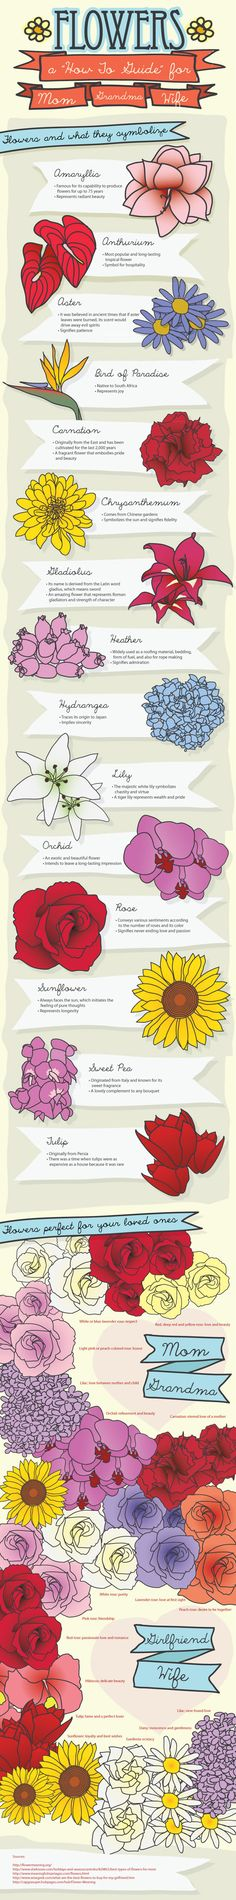 Make sure your flowers are sending the right message! This infographic details the meanings of popular flowers.